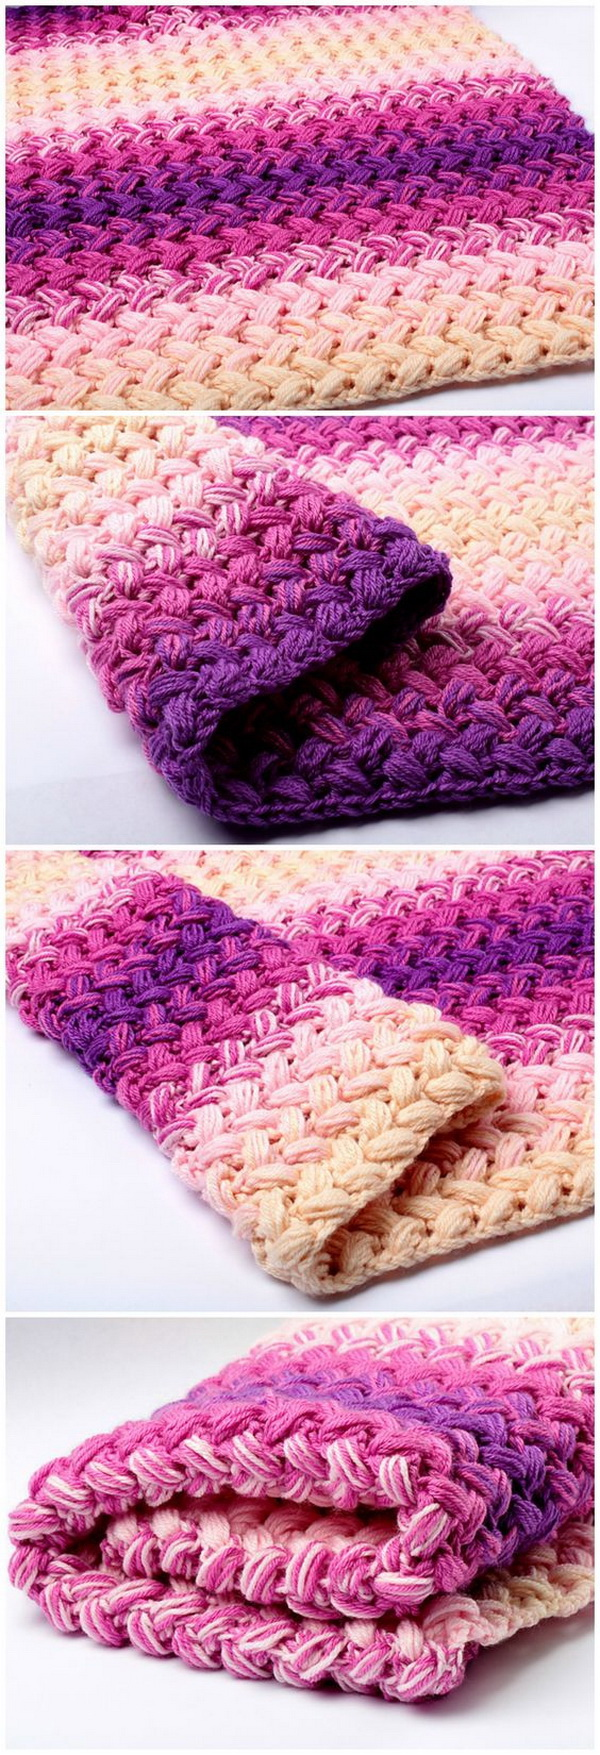 45 Quick And Easy Crochet Blanket Patterns For Beginners Listing More